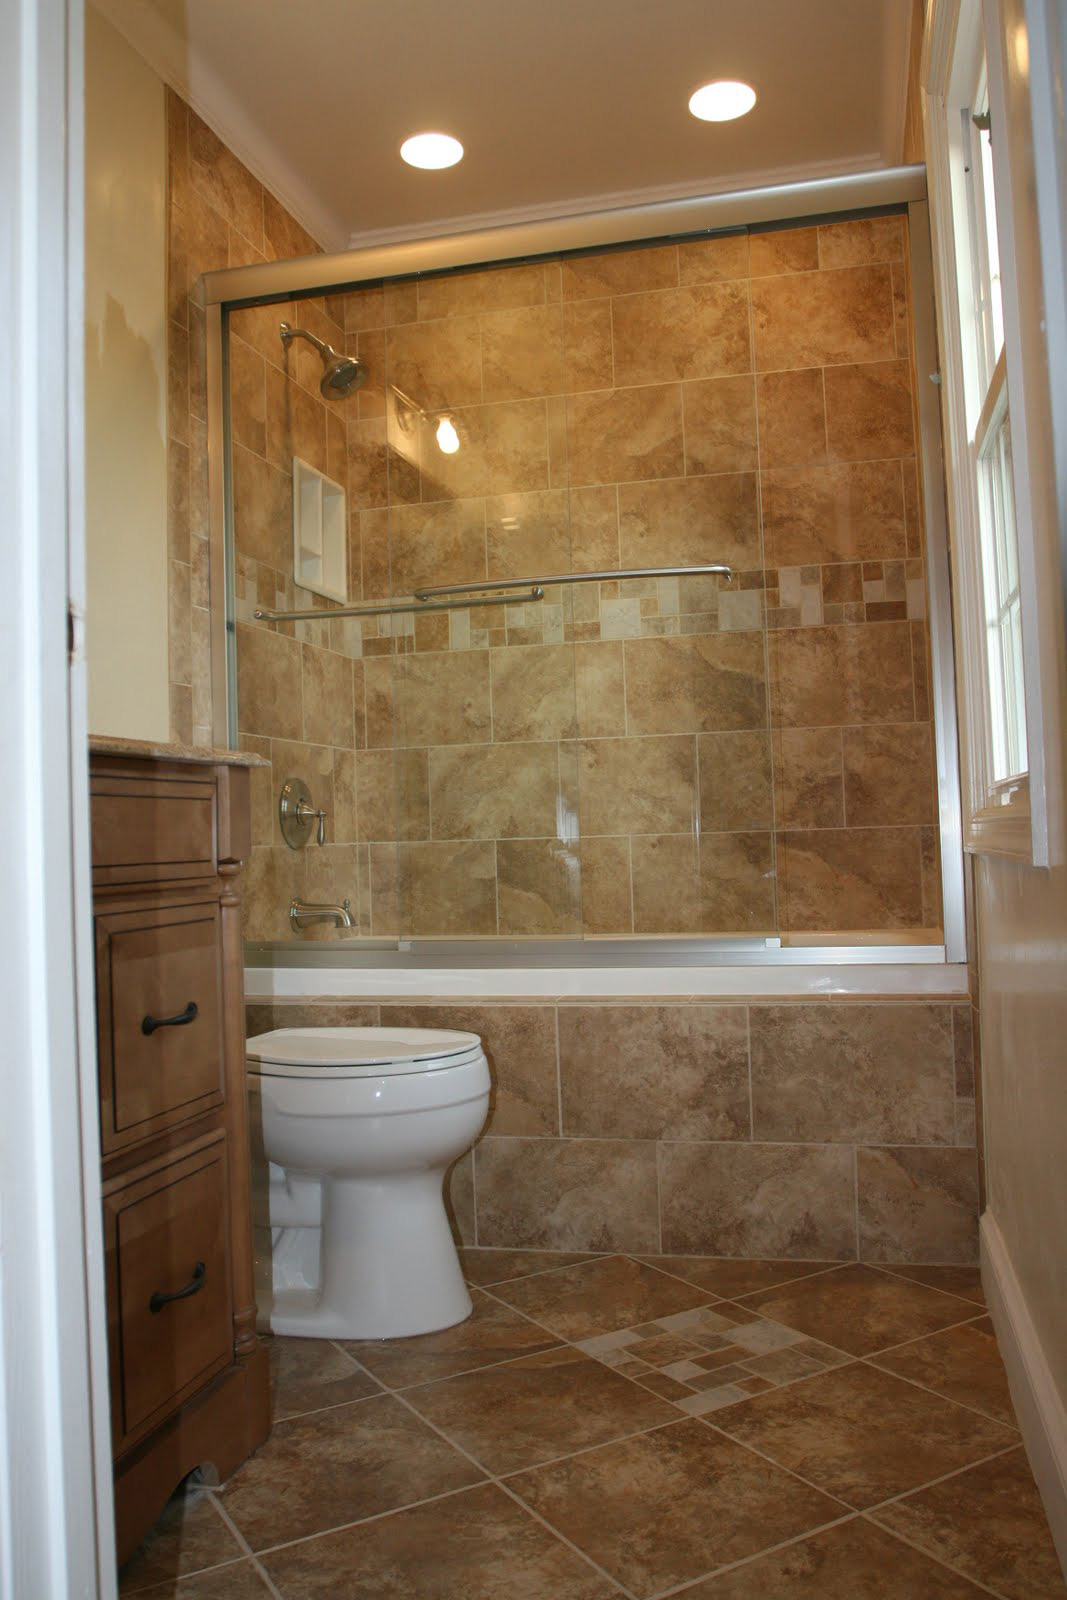 Charmant Bathroom Tile Ideas On A Budget